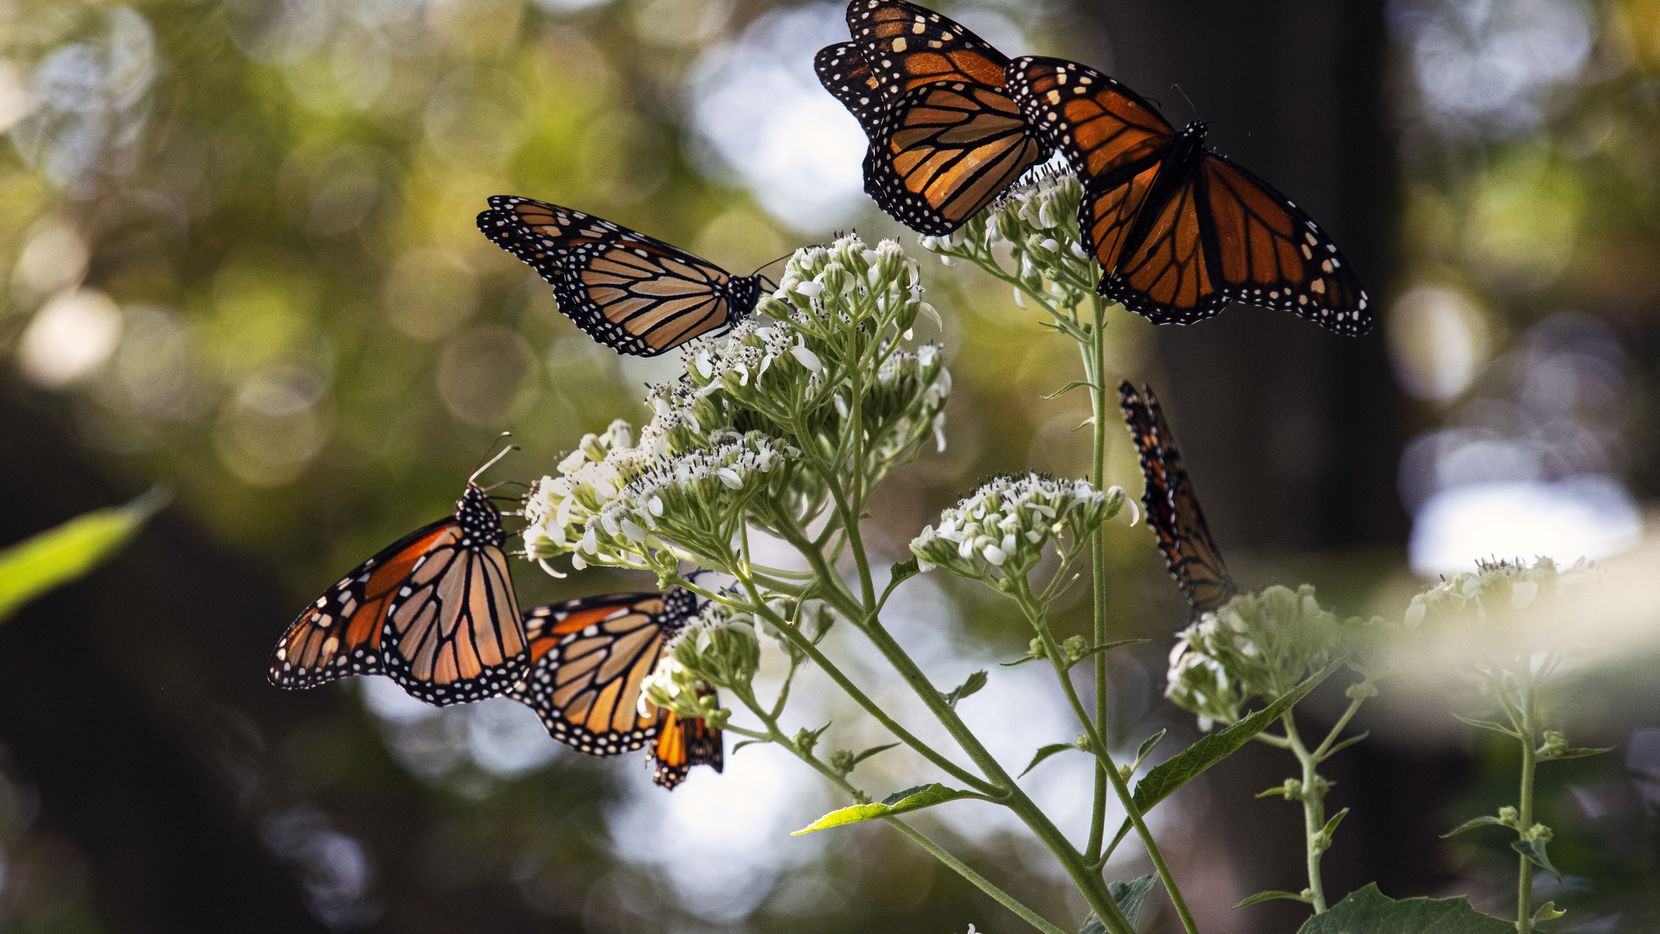 McKinney is looking for volunteers to plant milkweed on Saturday. The plant is a source of nourishment for monarch butterflies.